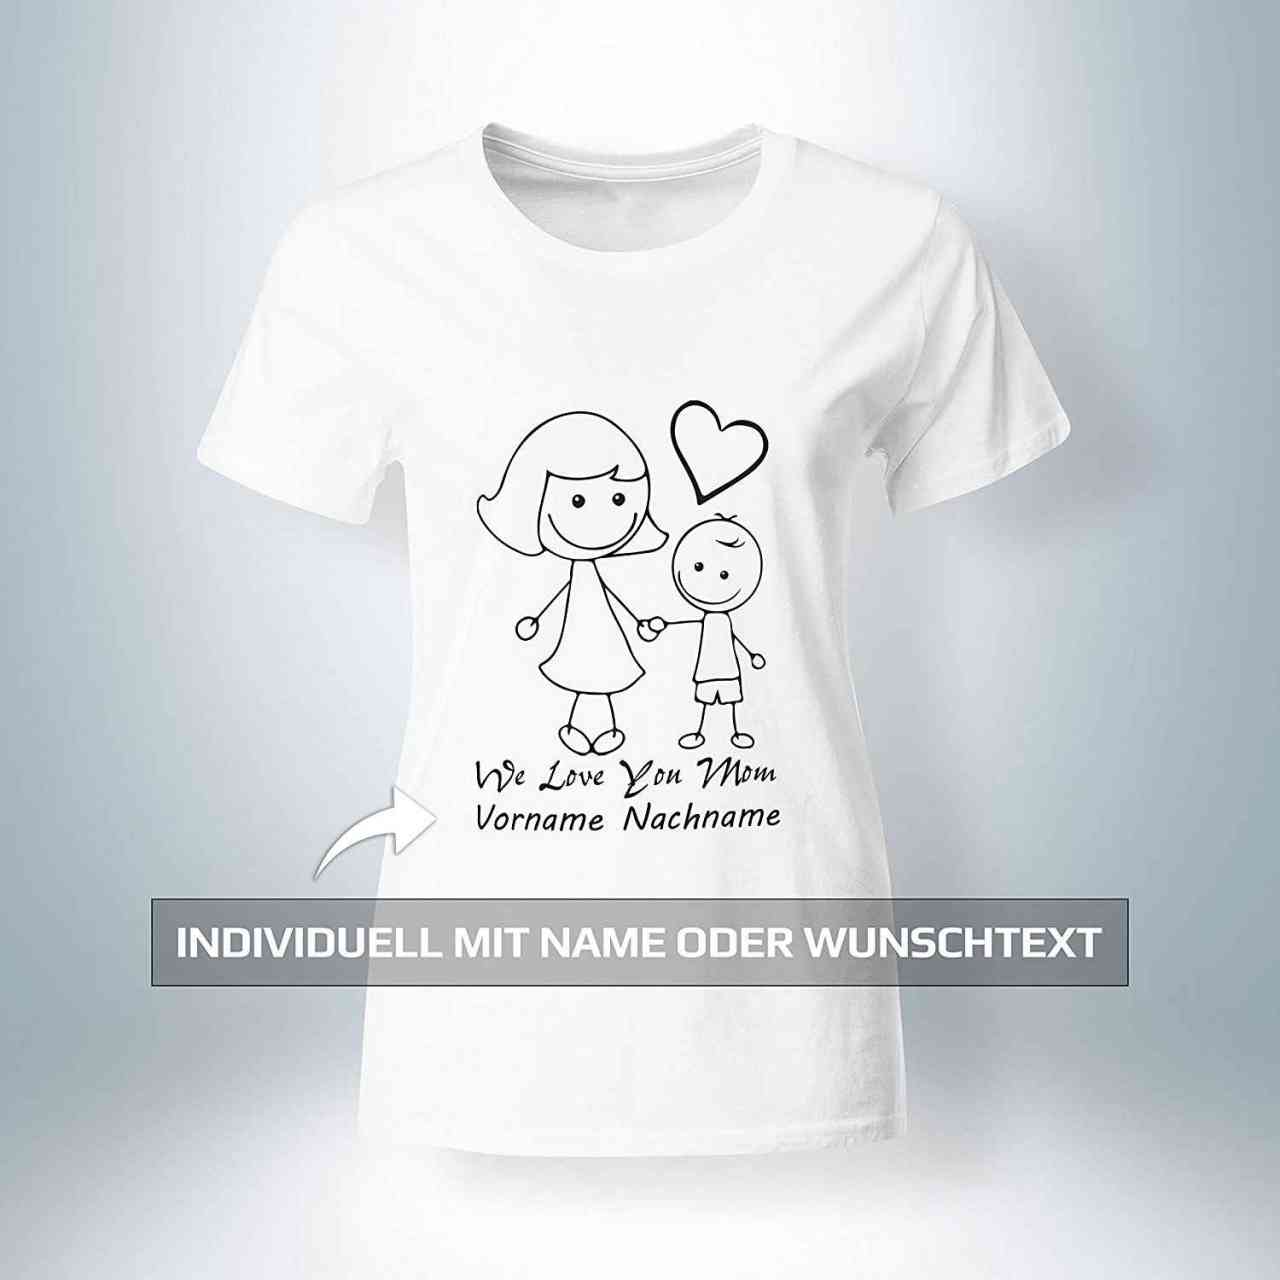 ❤ We Love You Mom ❤ mit Wunschtext/geschenk von Name Vorname - Muttertag T-Shirt | Mama - Mother - M